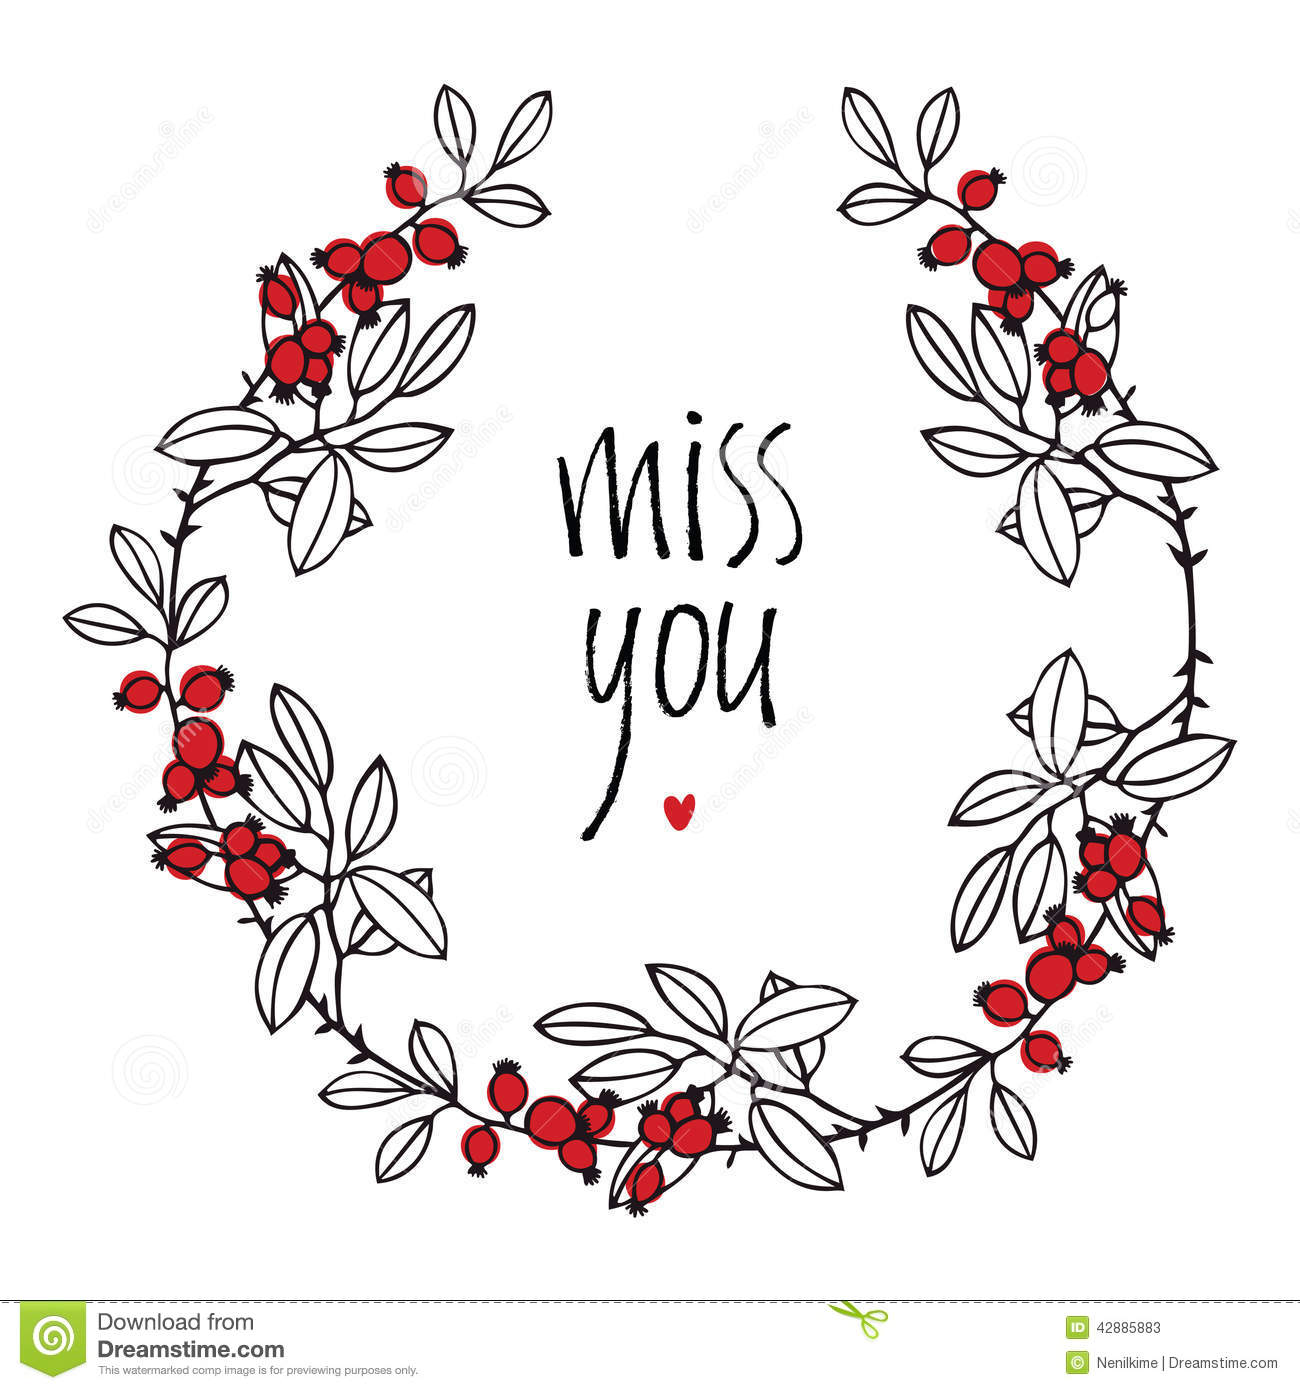 Miss You Design Card With Floral Vignette Leaves And Red